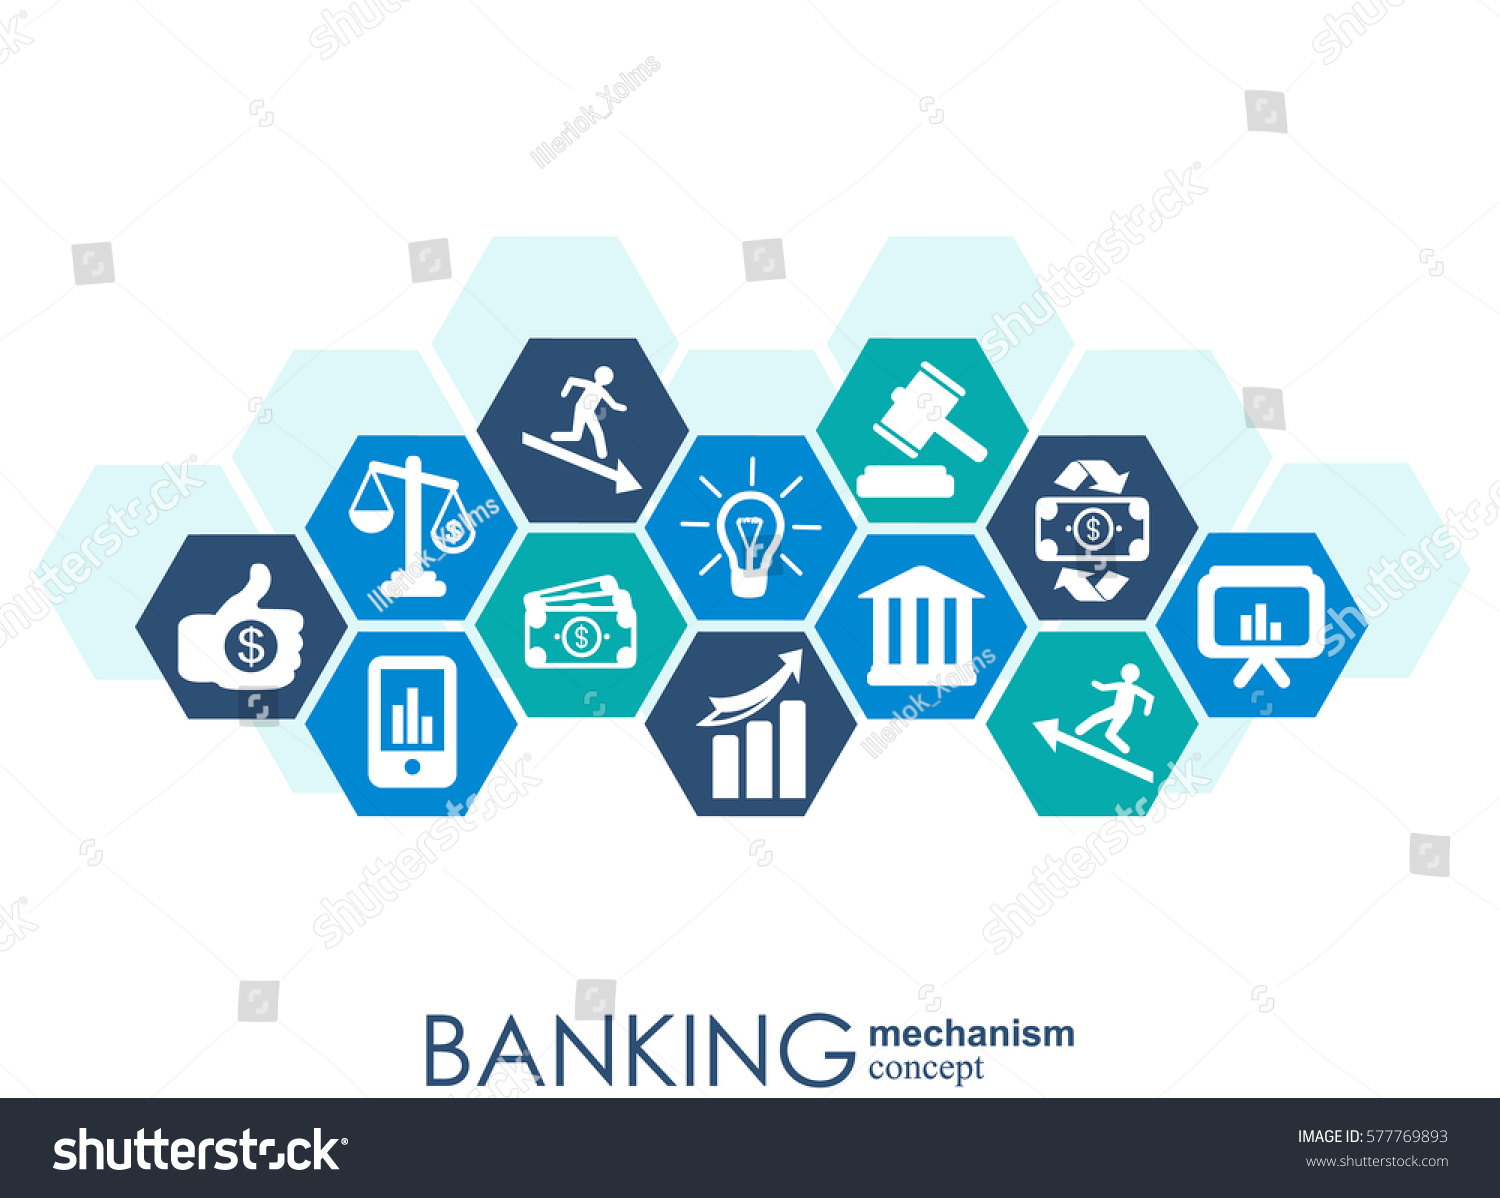 Banking mechanism abstract background connected gears stock vector banking mechanism abstract background with connected gears and integrated flat icons symbols for money biocorpaavc Gallery